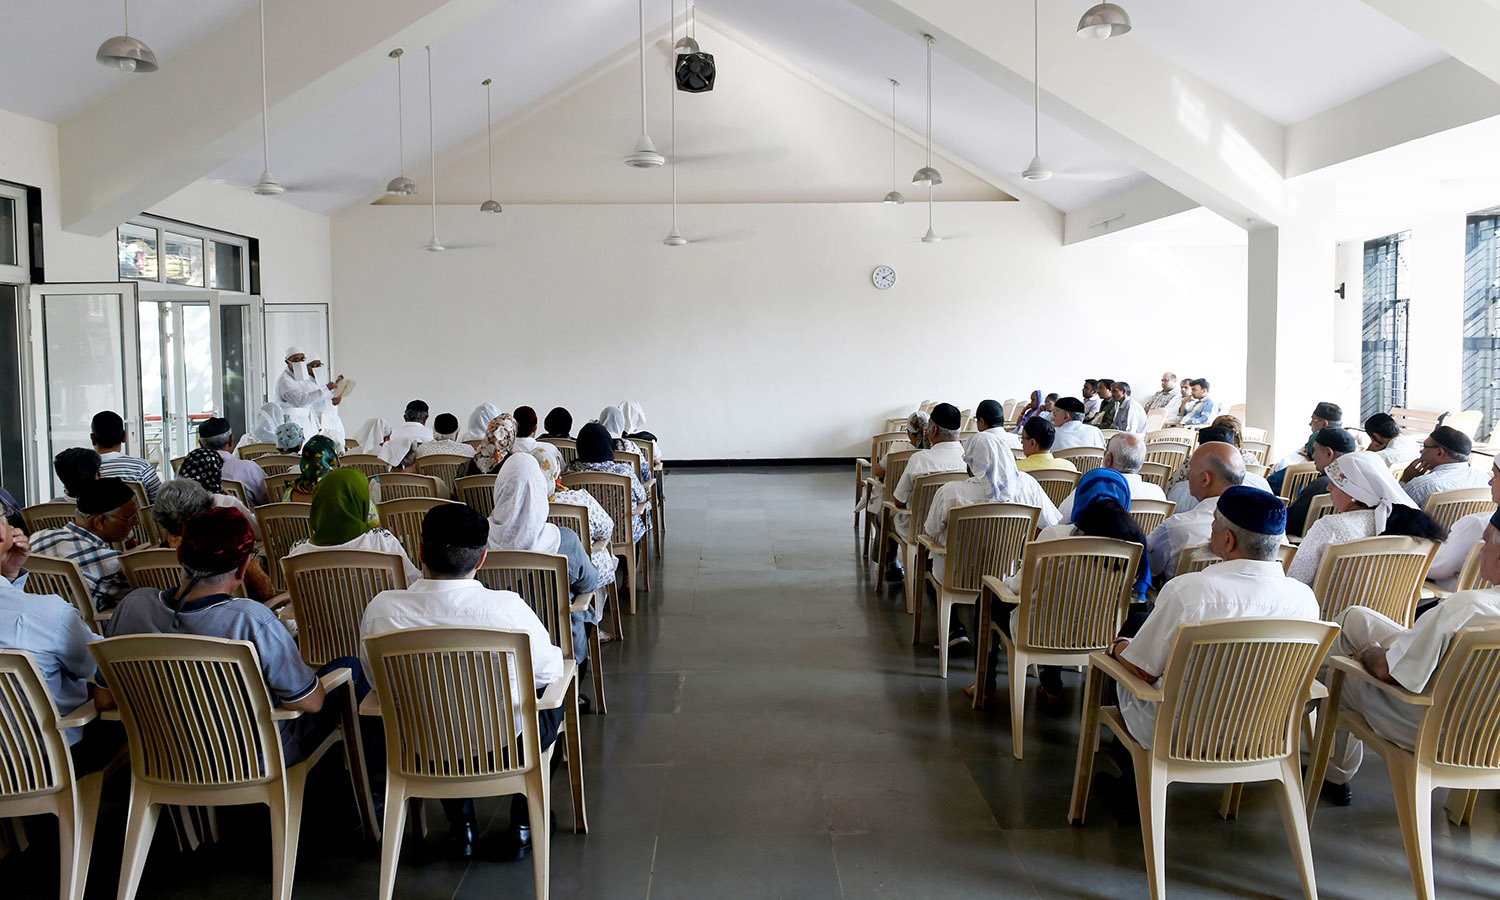 In this photo taken on May 10, 2016, Parsi priests conduct a funeral service at a prayer hall in Mumbai.